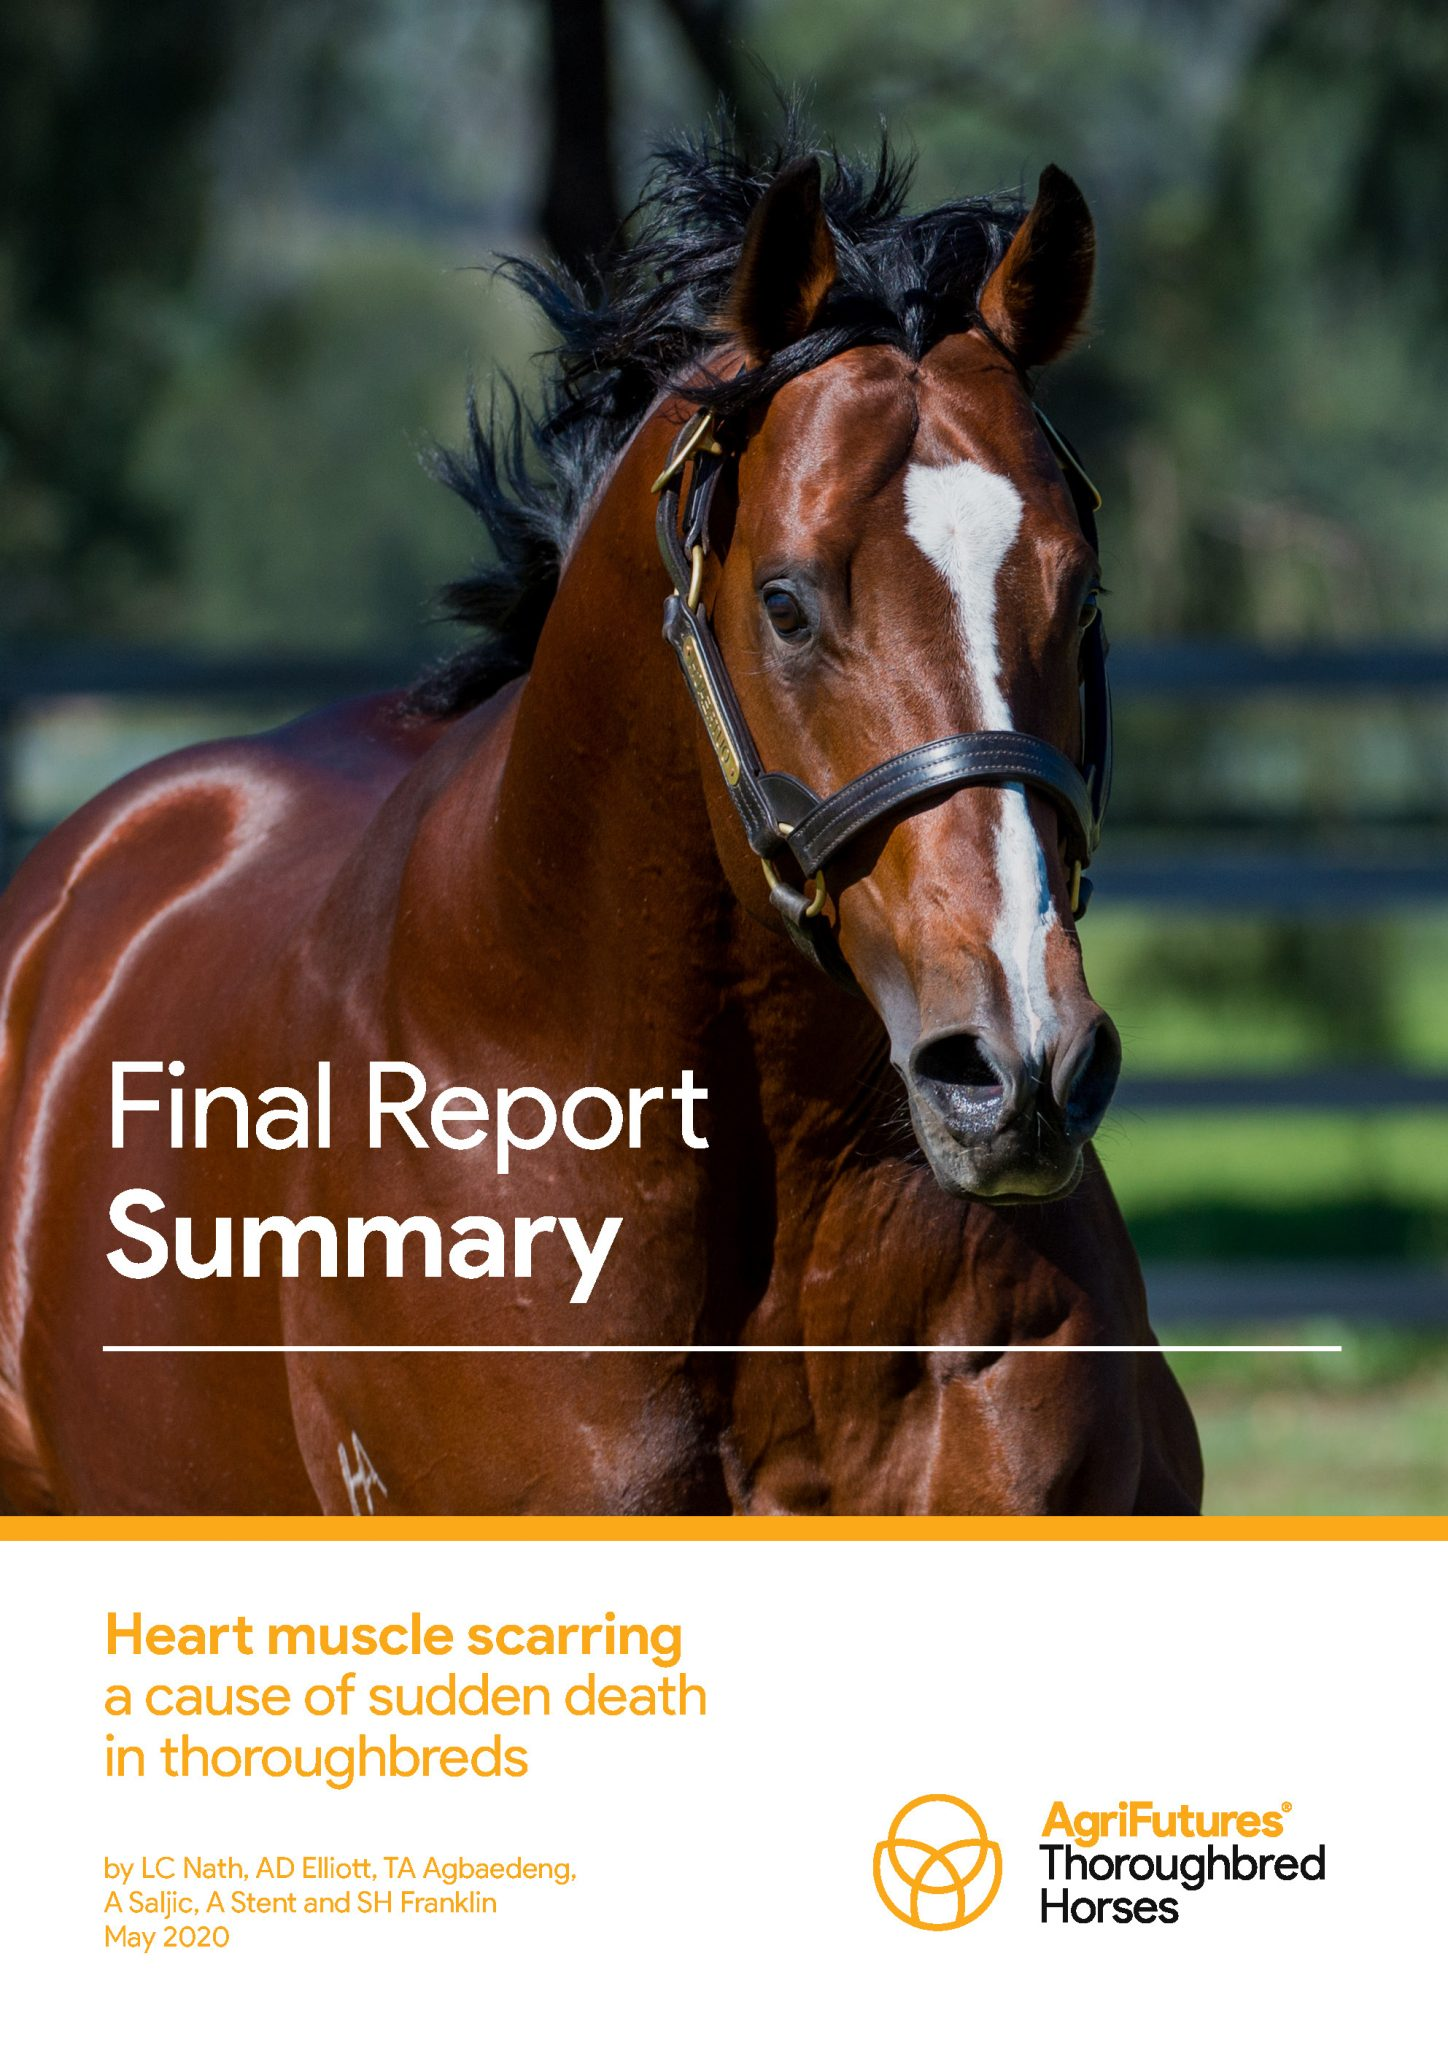 Final report summary: Heart muscle scarring a cause of sudden death in thoroughbreds - image